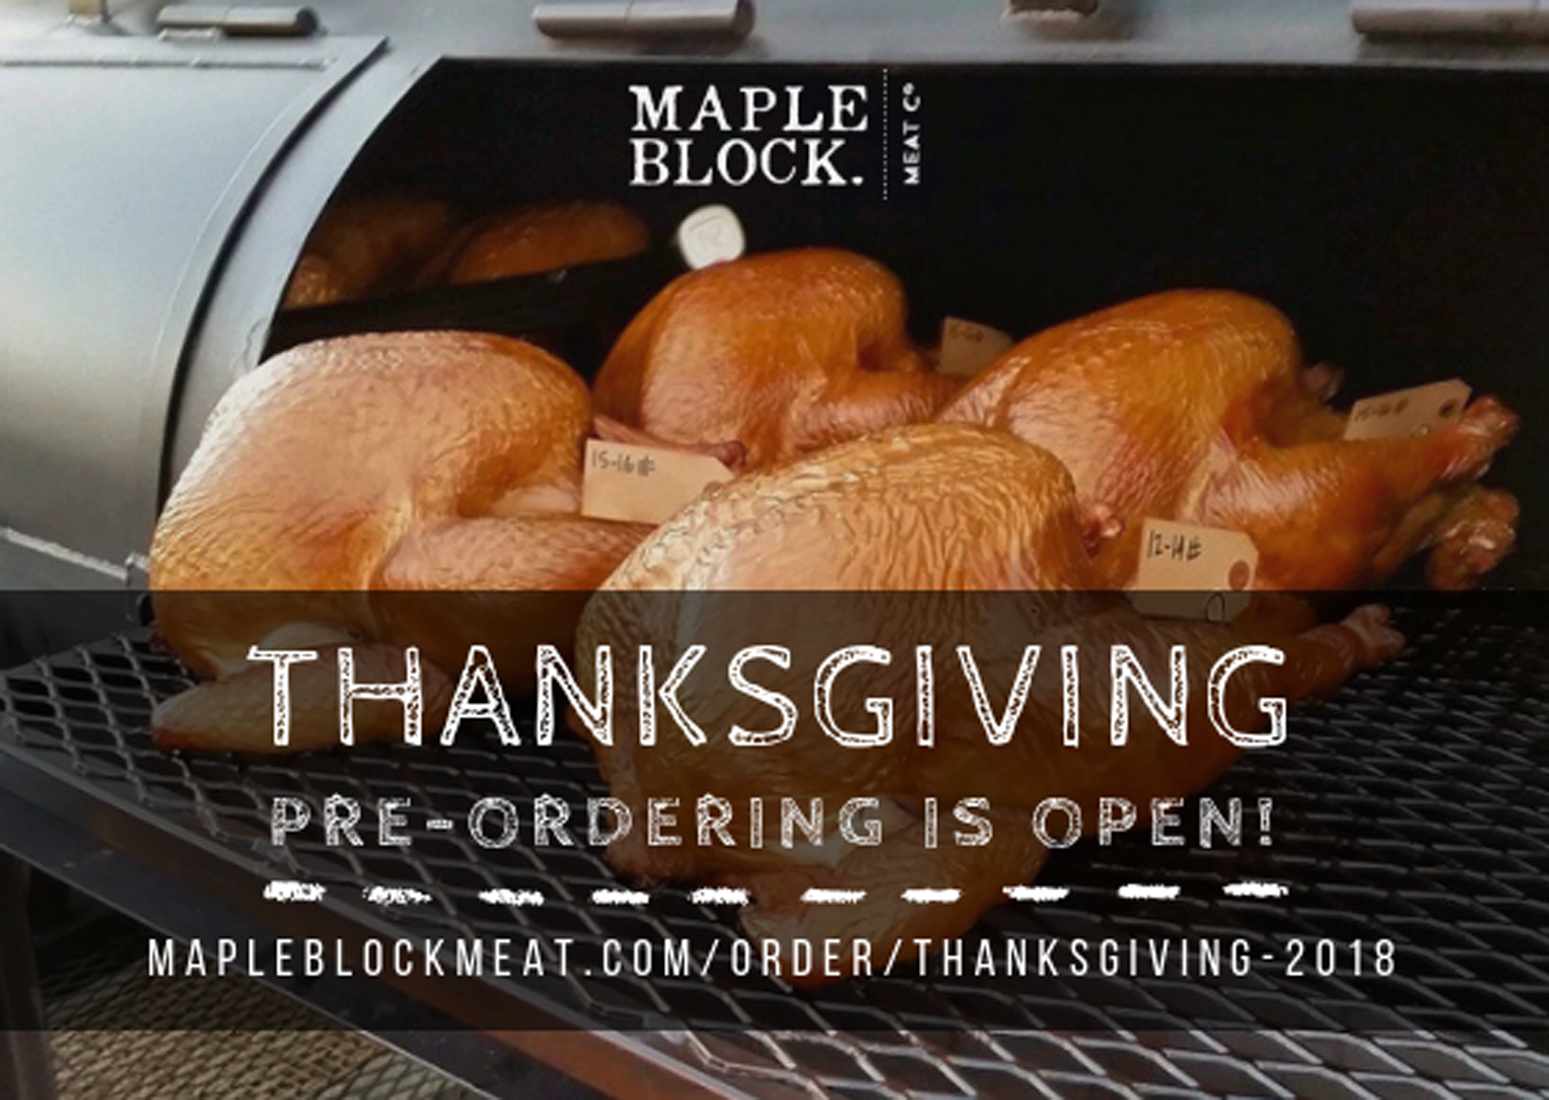 Thanksgiving 2018_ORDER FORM_Maple Block Meat Co_BBQ_Culver City_Los Angeles